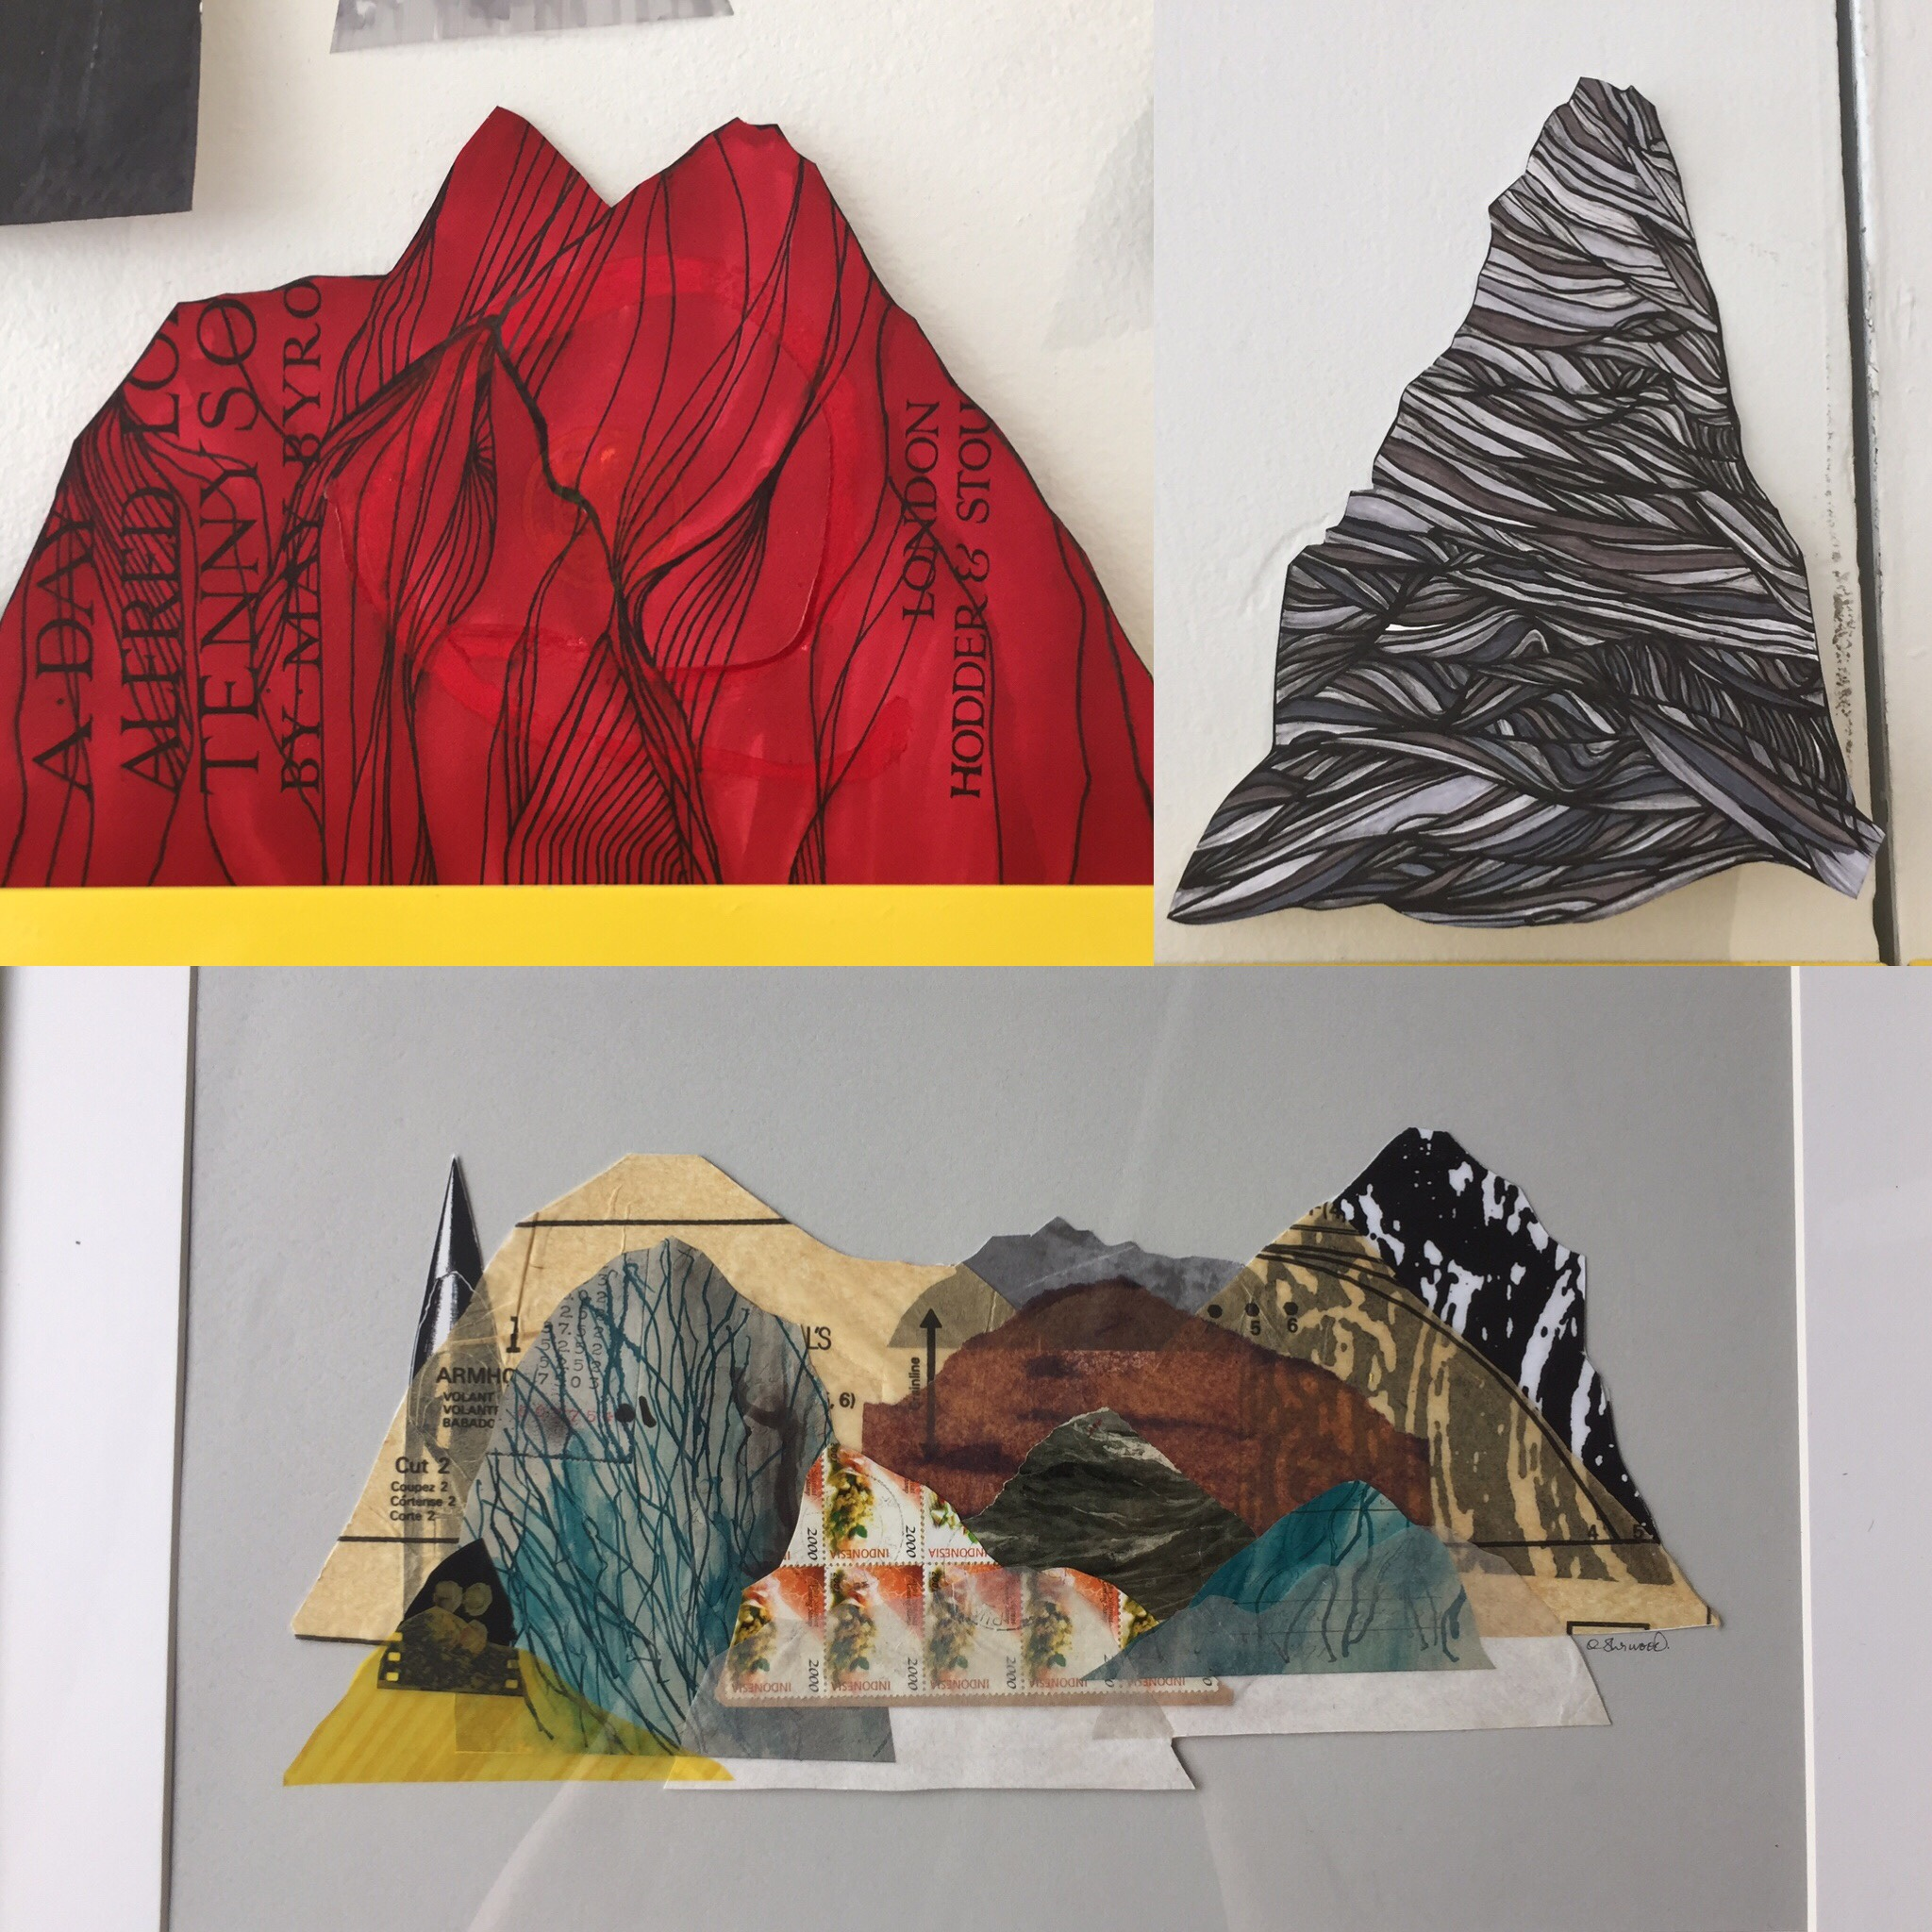 June 28/19 - Finished and framed, added yellow mountain on left, coloured drawings made previously.